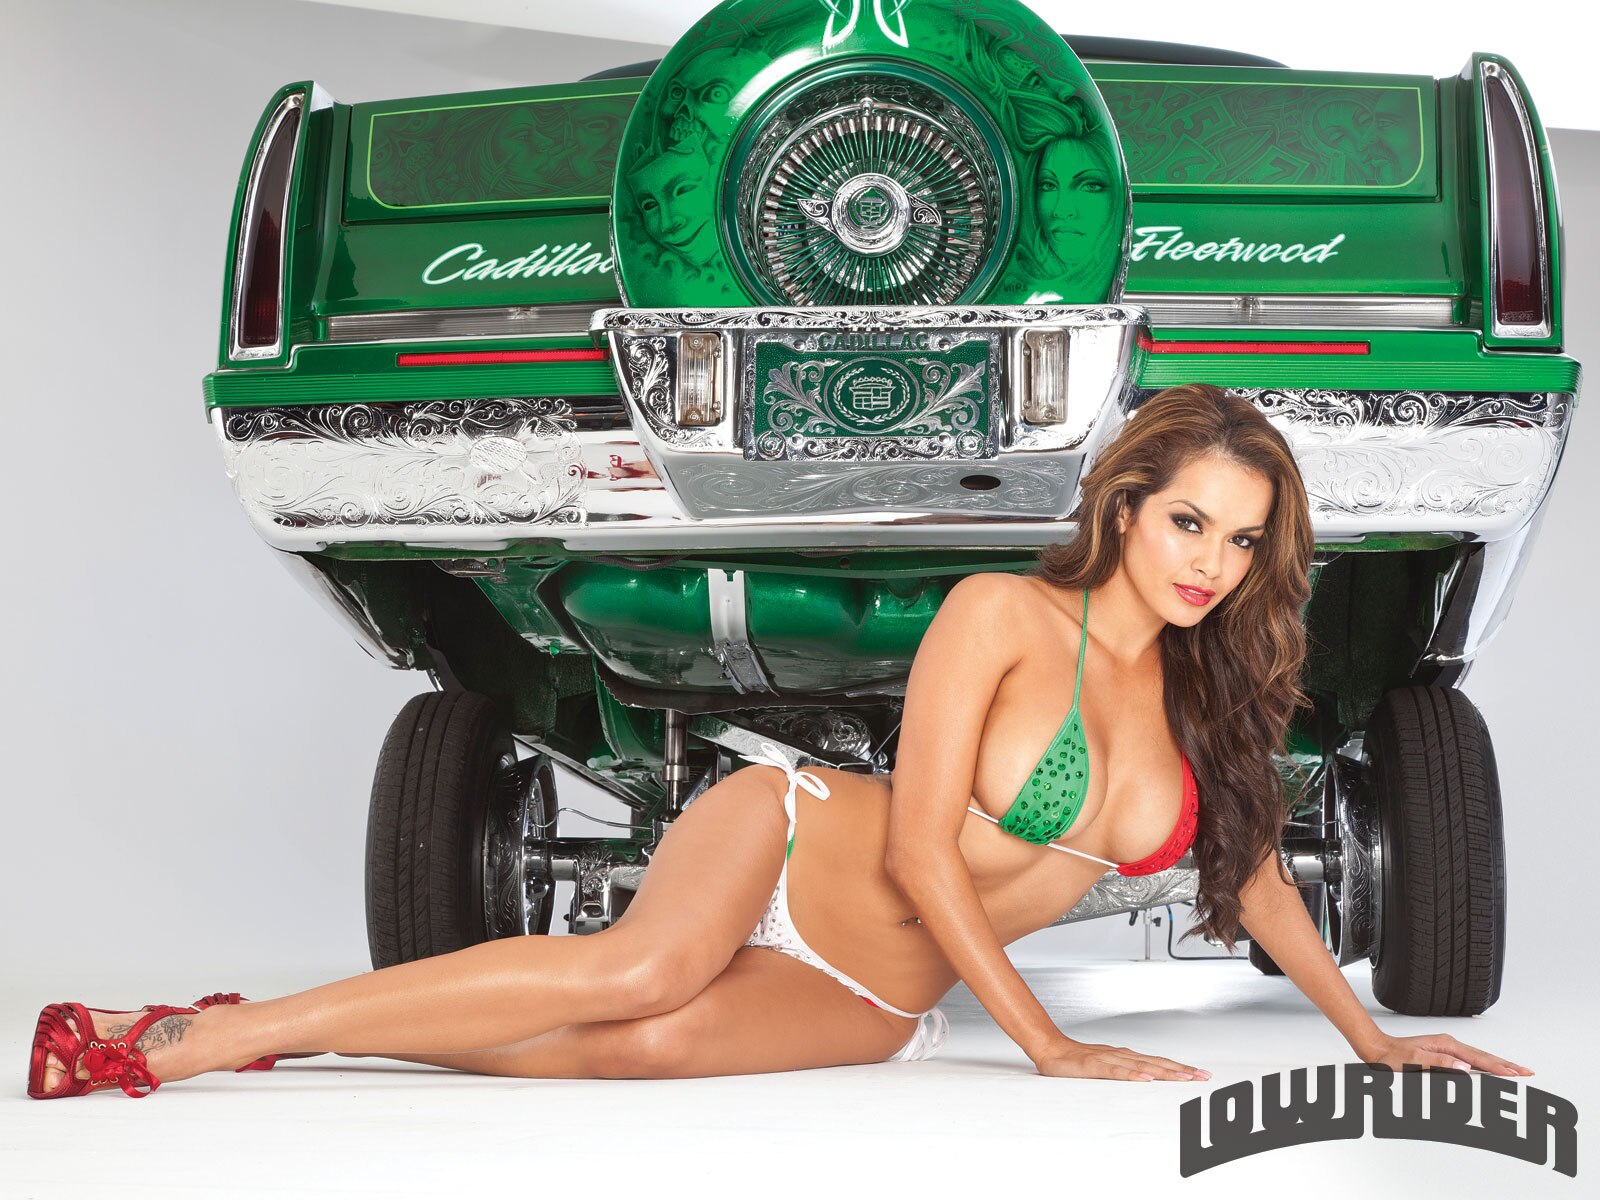 1201-lrms-01-o-daisy-marie-lowrider-girls-model1